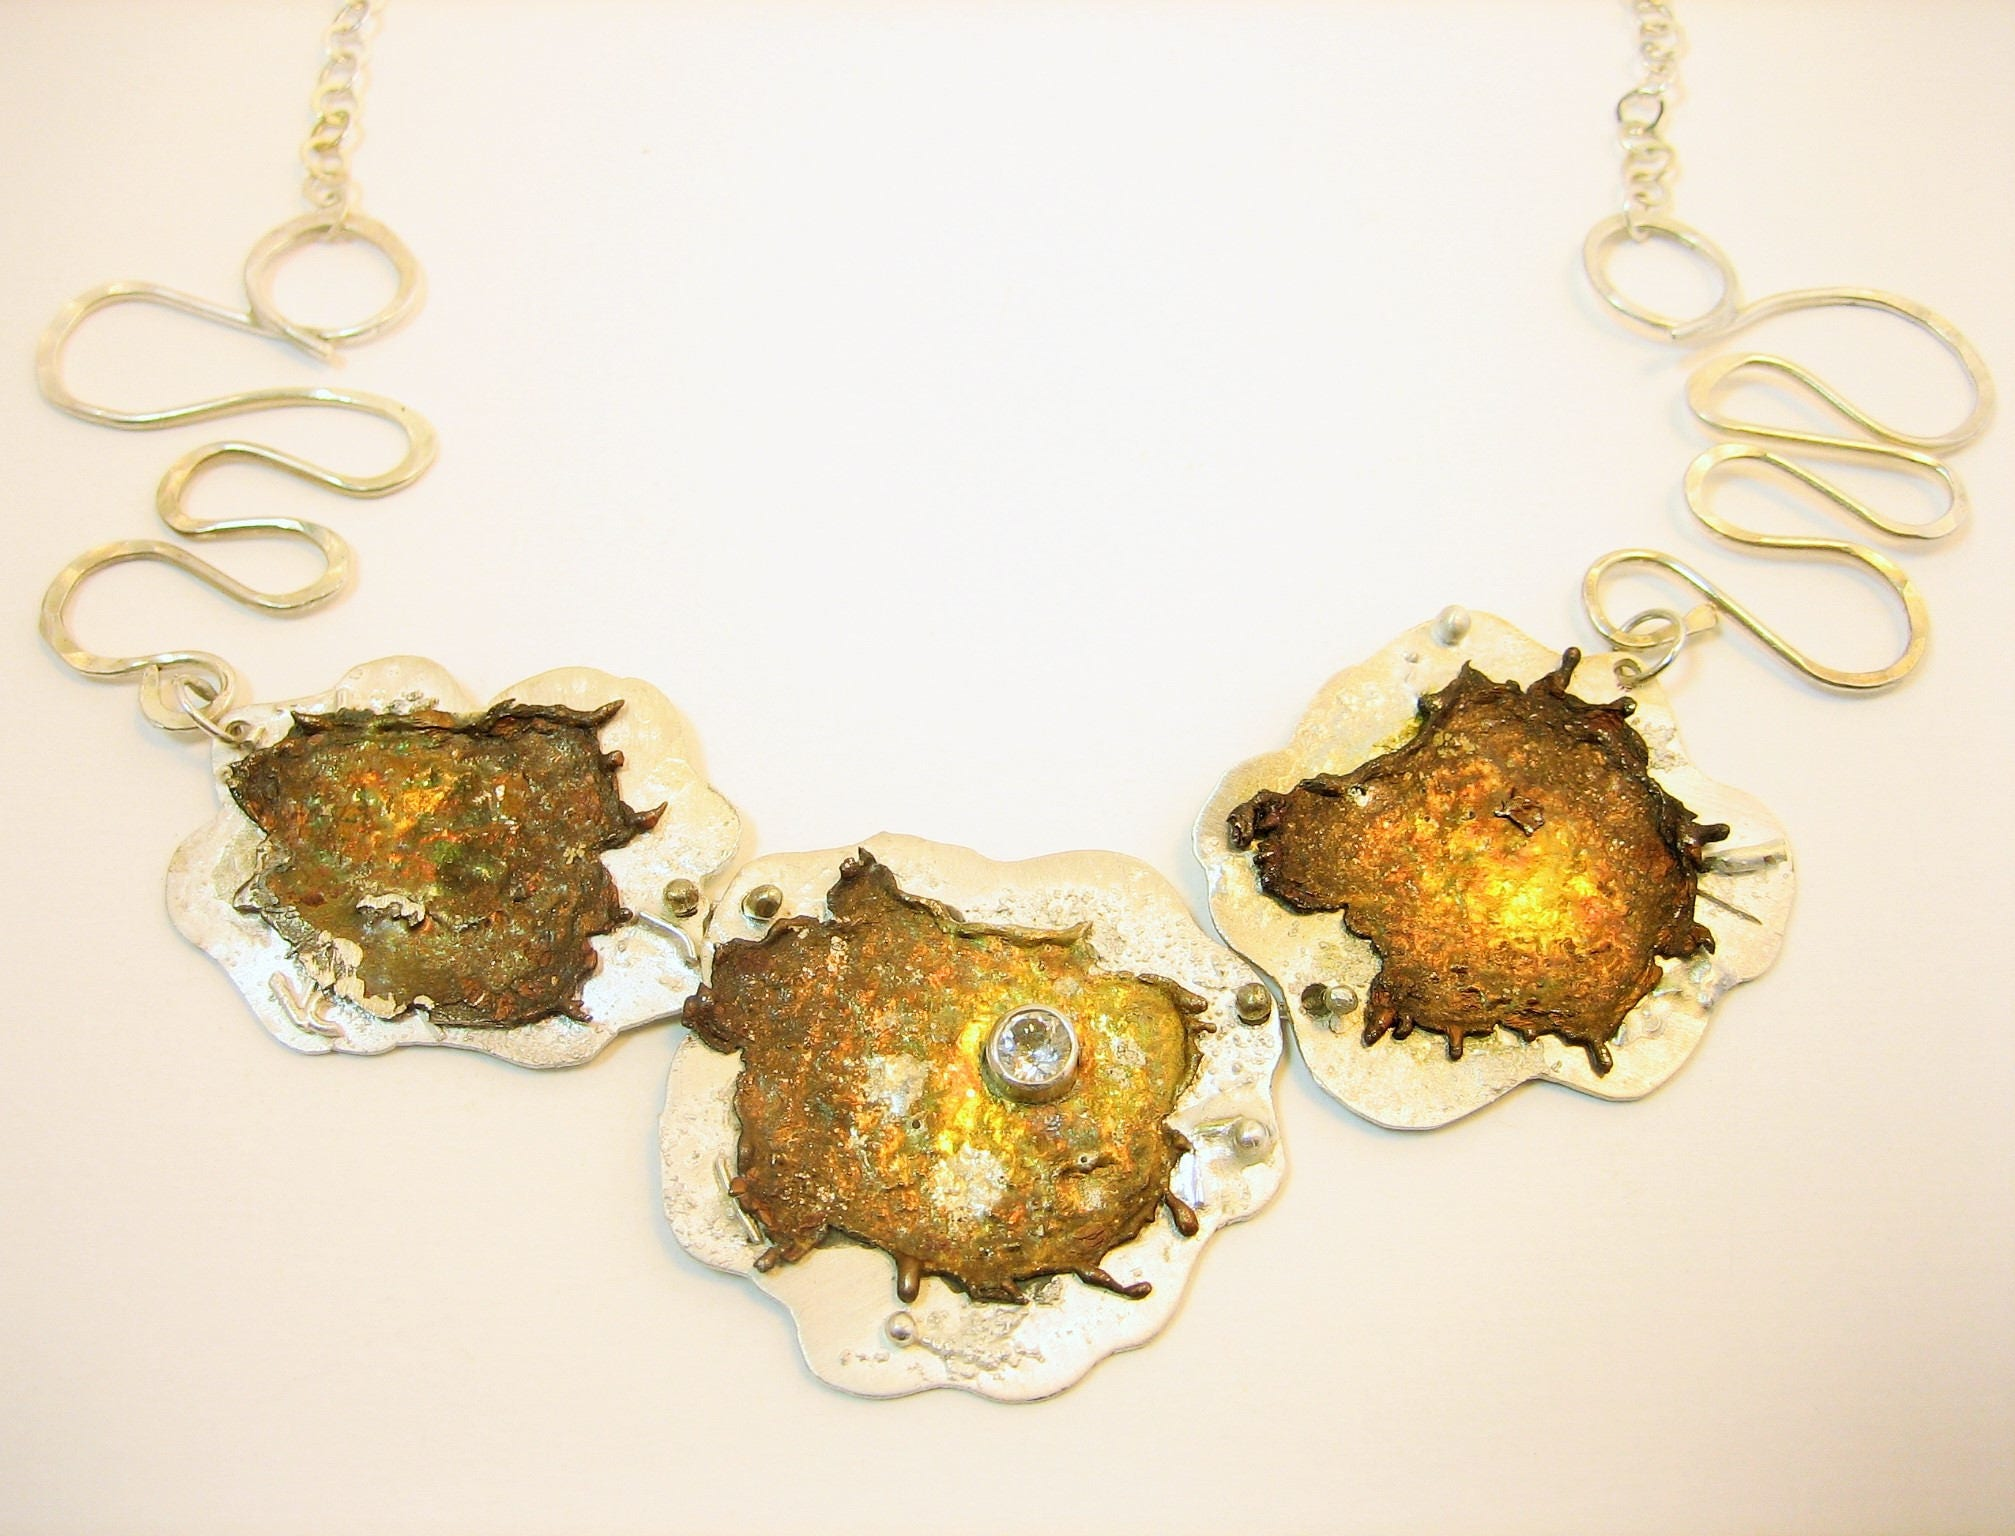 One-of-a-kind unique star necklace, silver starburst necklace, artisan two toned necklace, white topaz necklace, silver and gold necklace